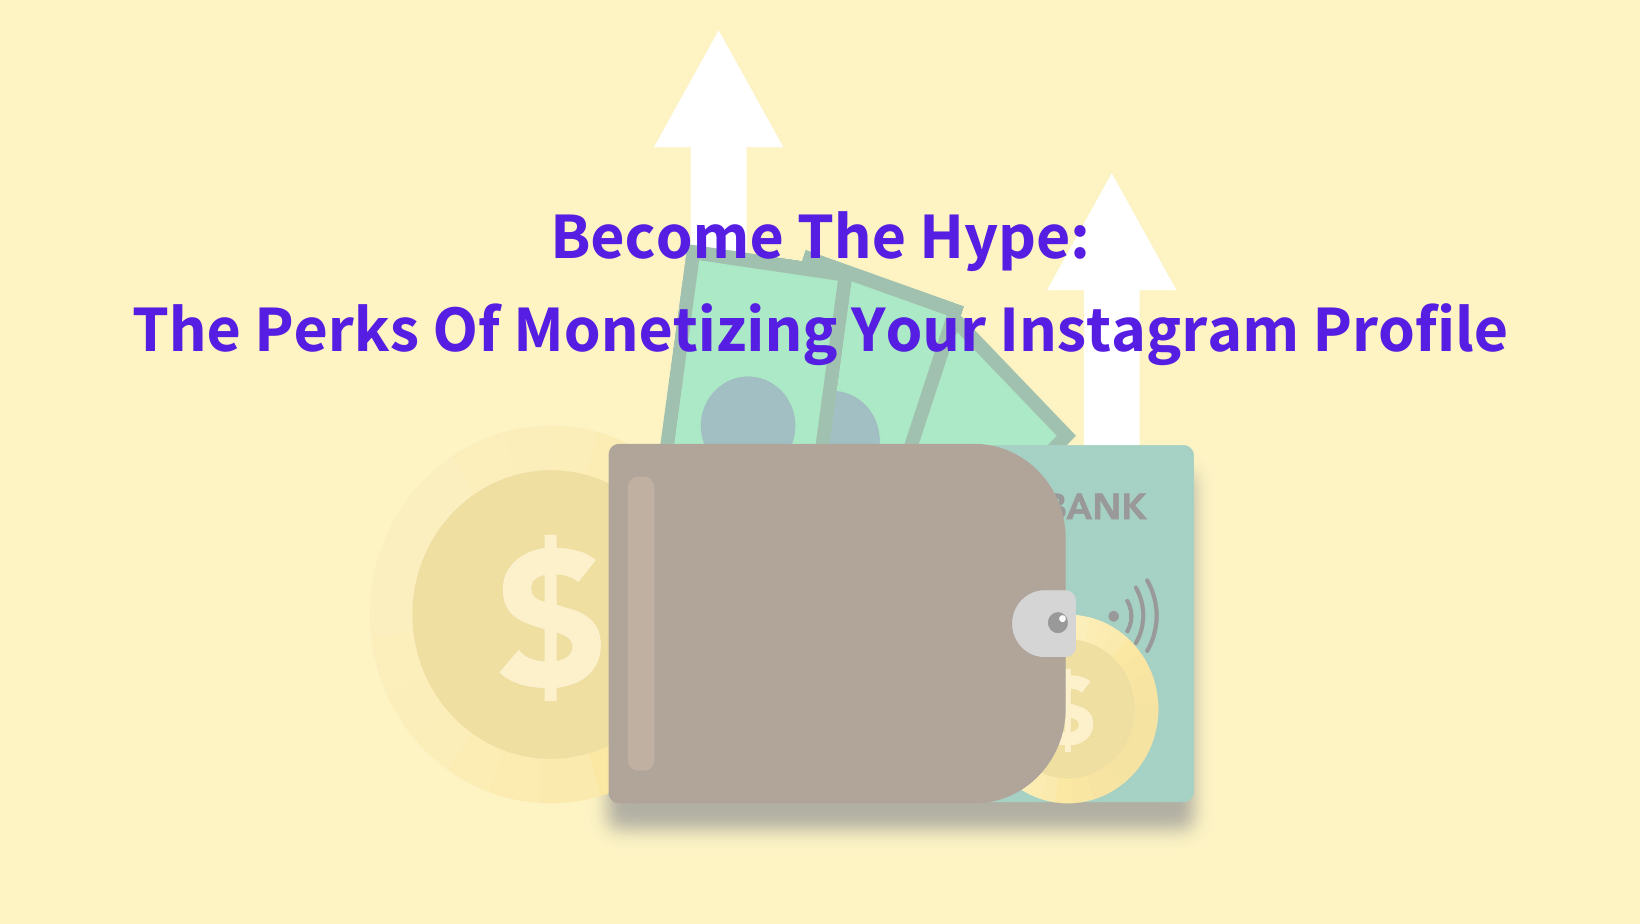 The Perks Of Monetizing Your Instagram Profile